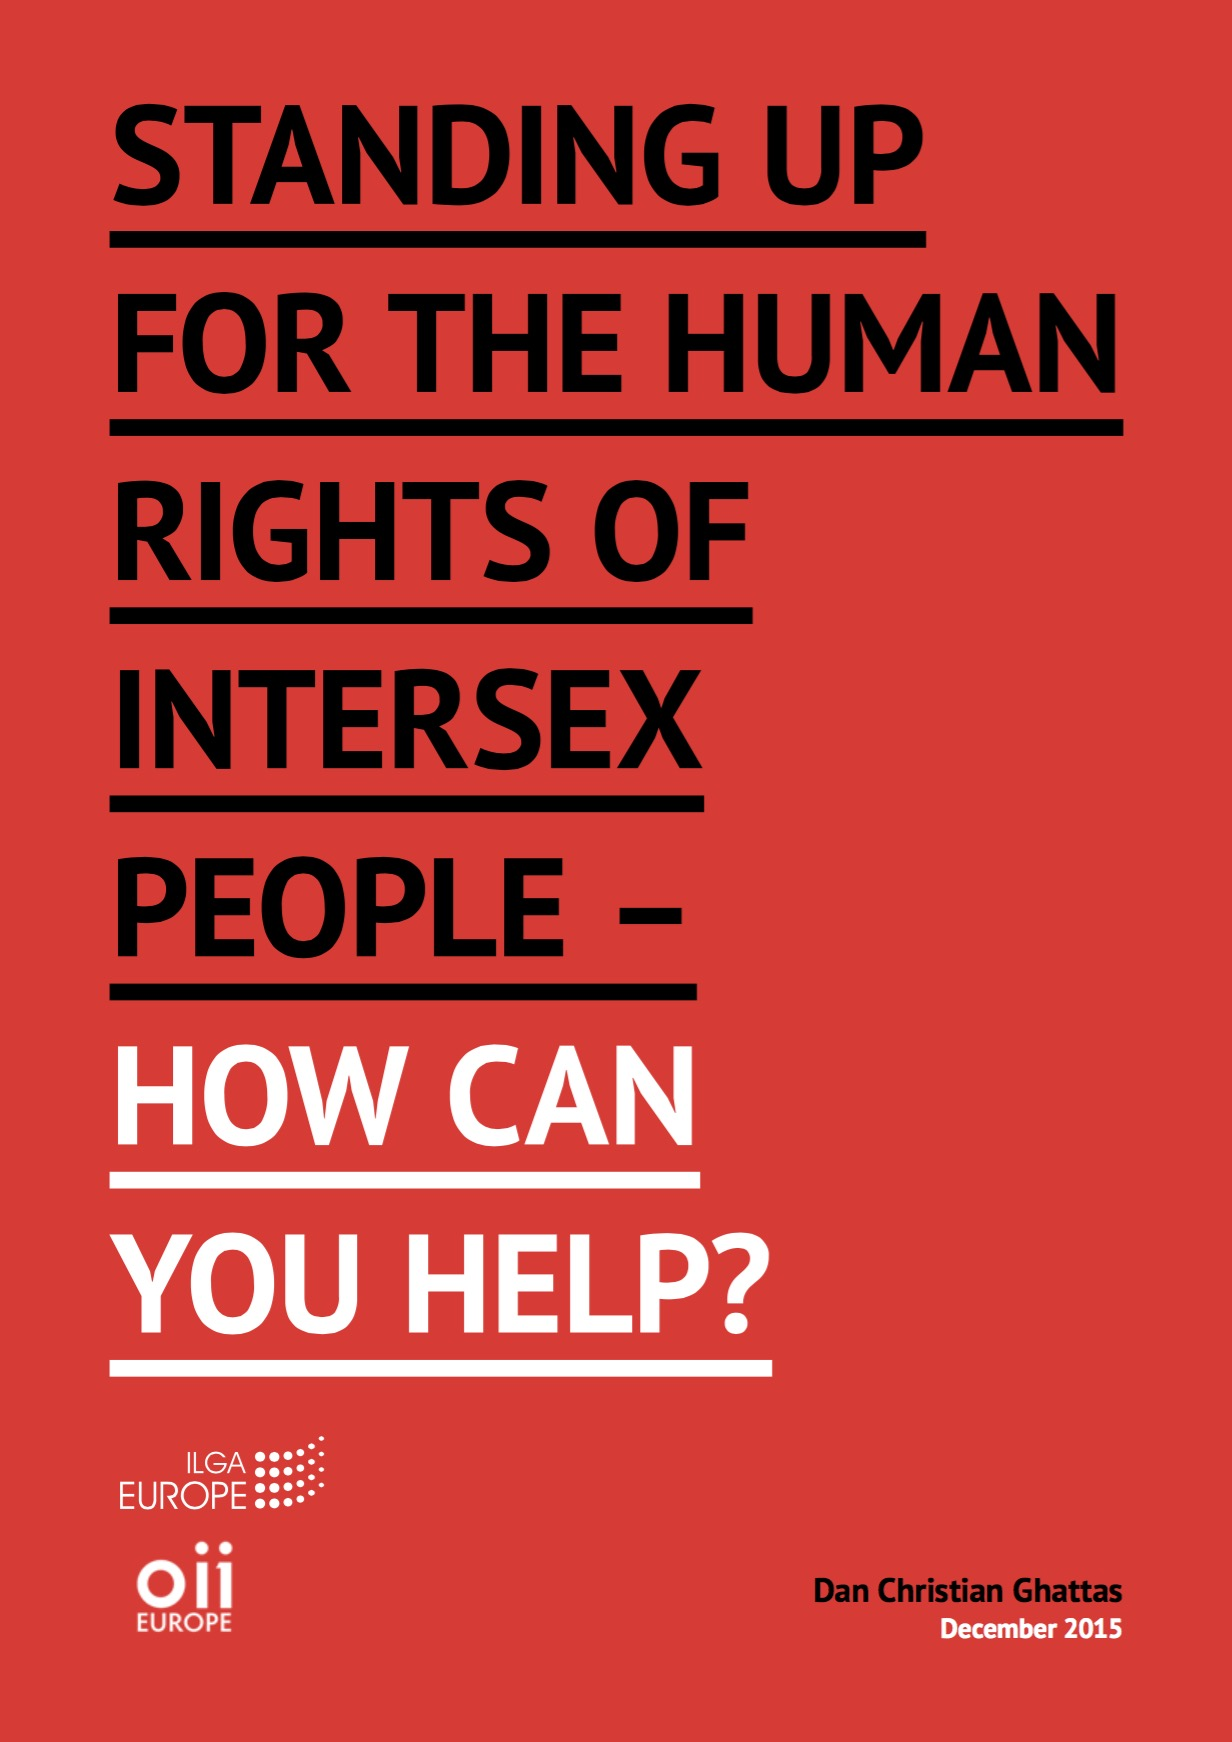 Toolkit: Standing up for the human rights of intersex people – how can you help?